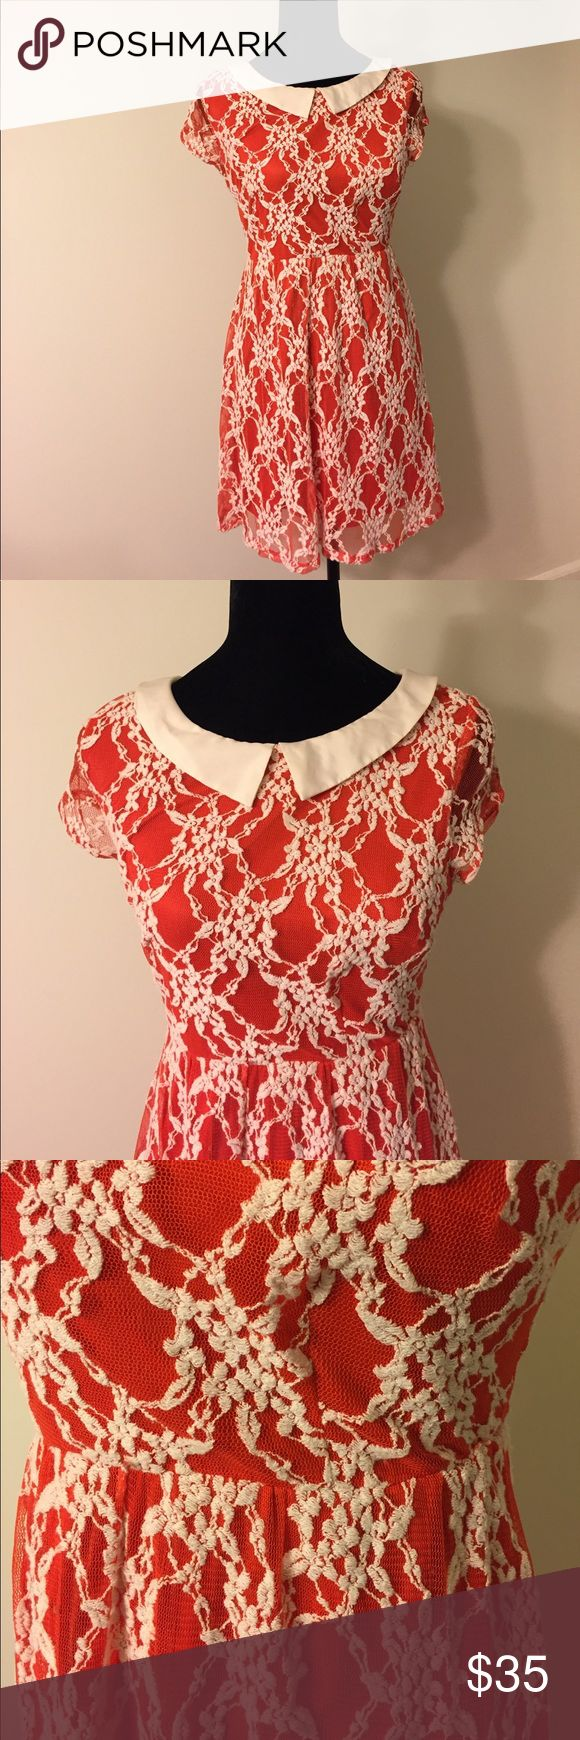 ModCloth Orange Lace Dress w Peter Pan Collar Cute and quirky reddish orange dress by Petticoat Alley for ModCloth. Lace. White Peter span collar. ModCloth Dresses